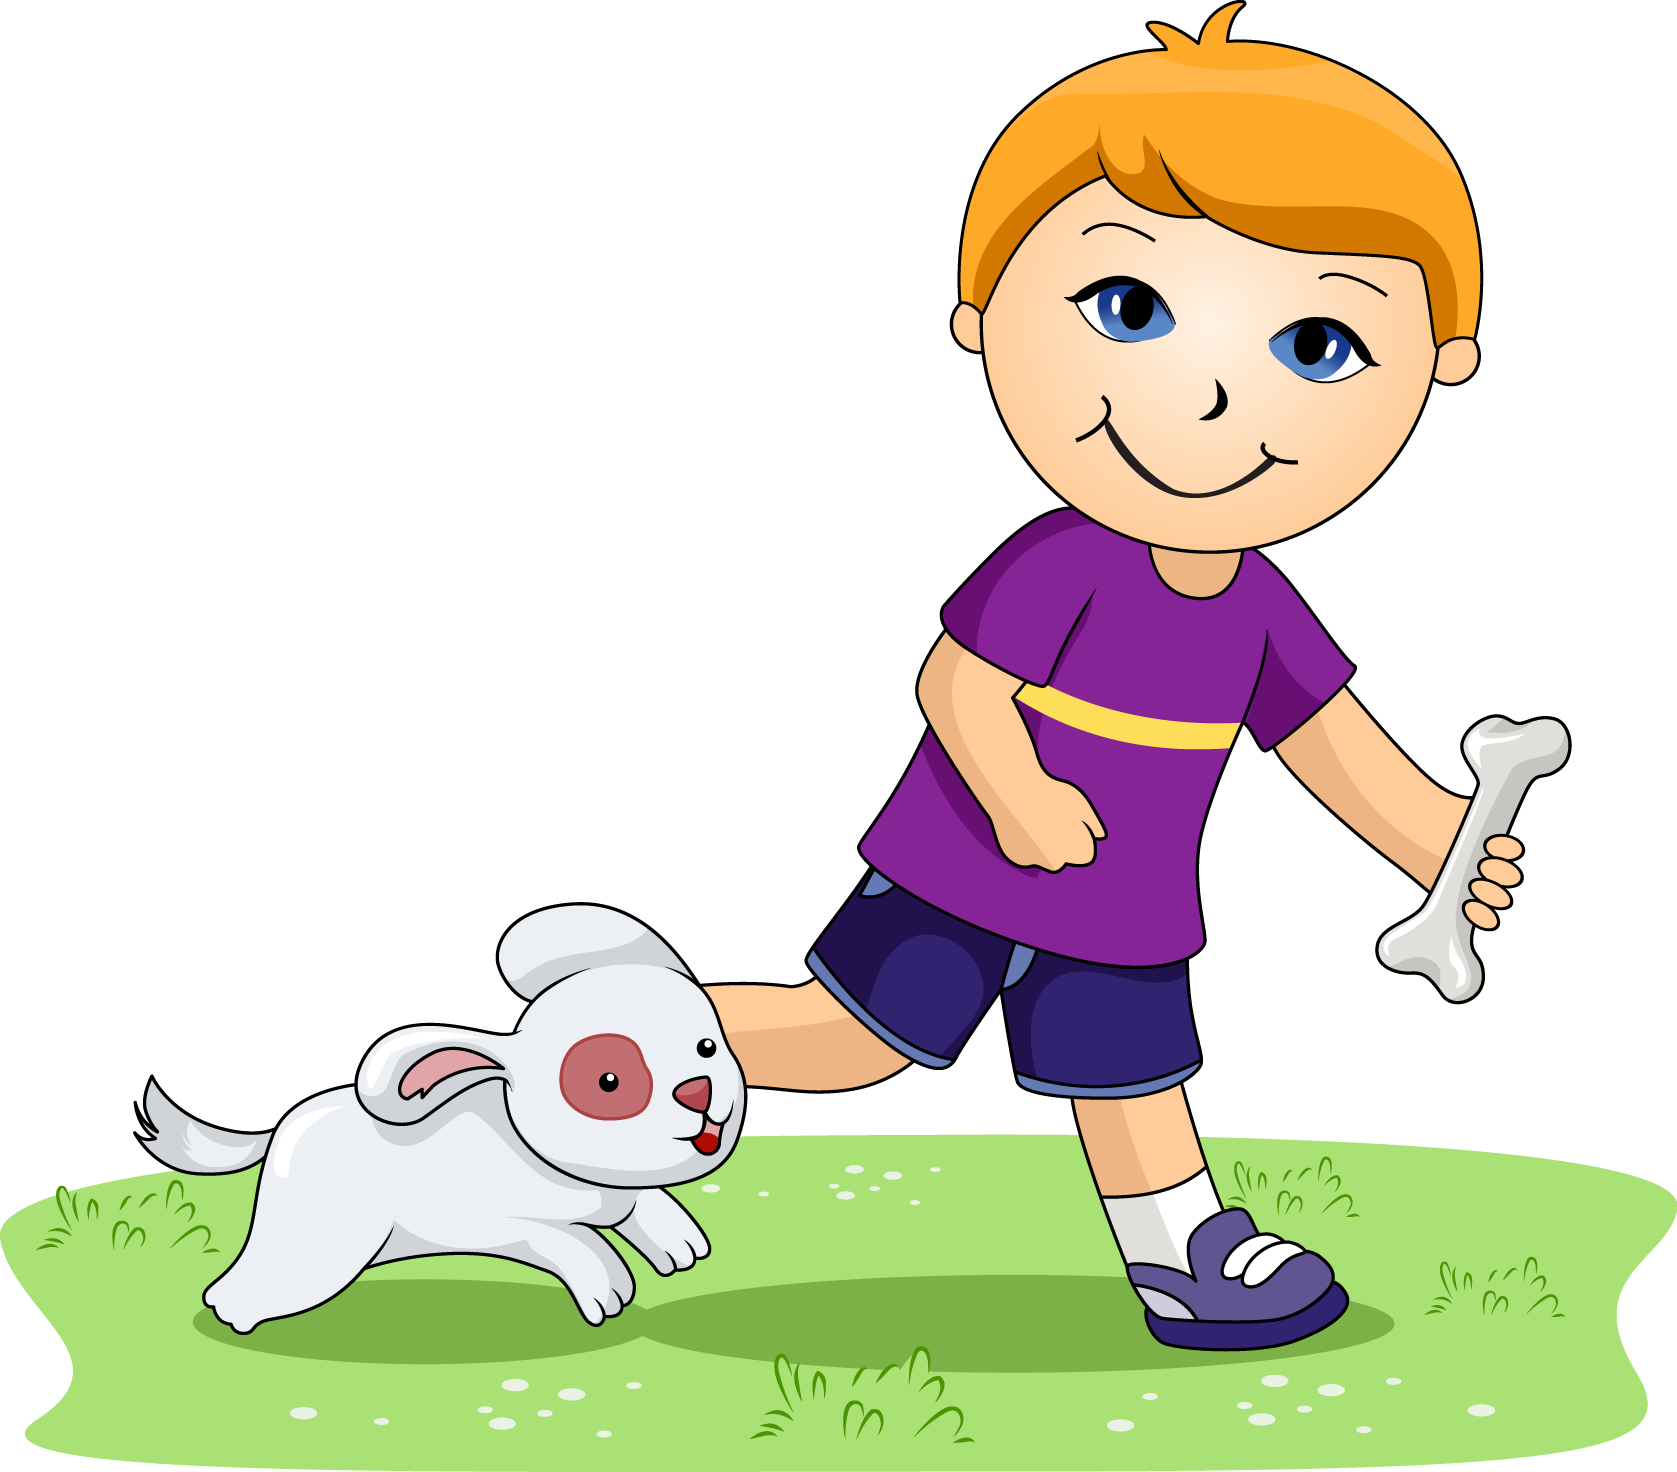 Clipart park jogging. Lady walking dog silhouette